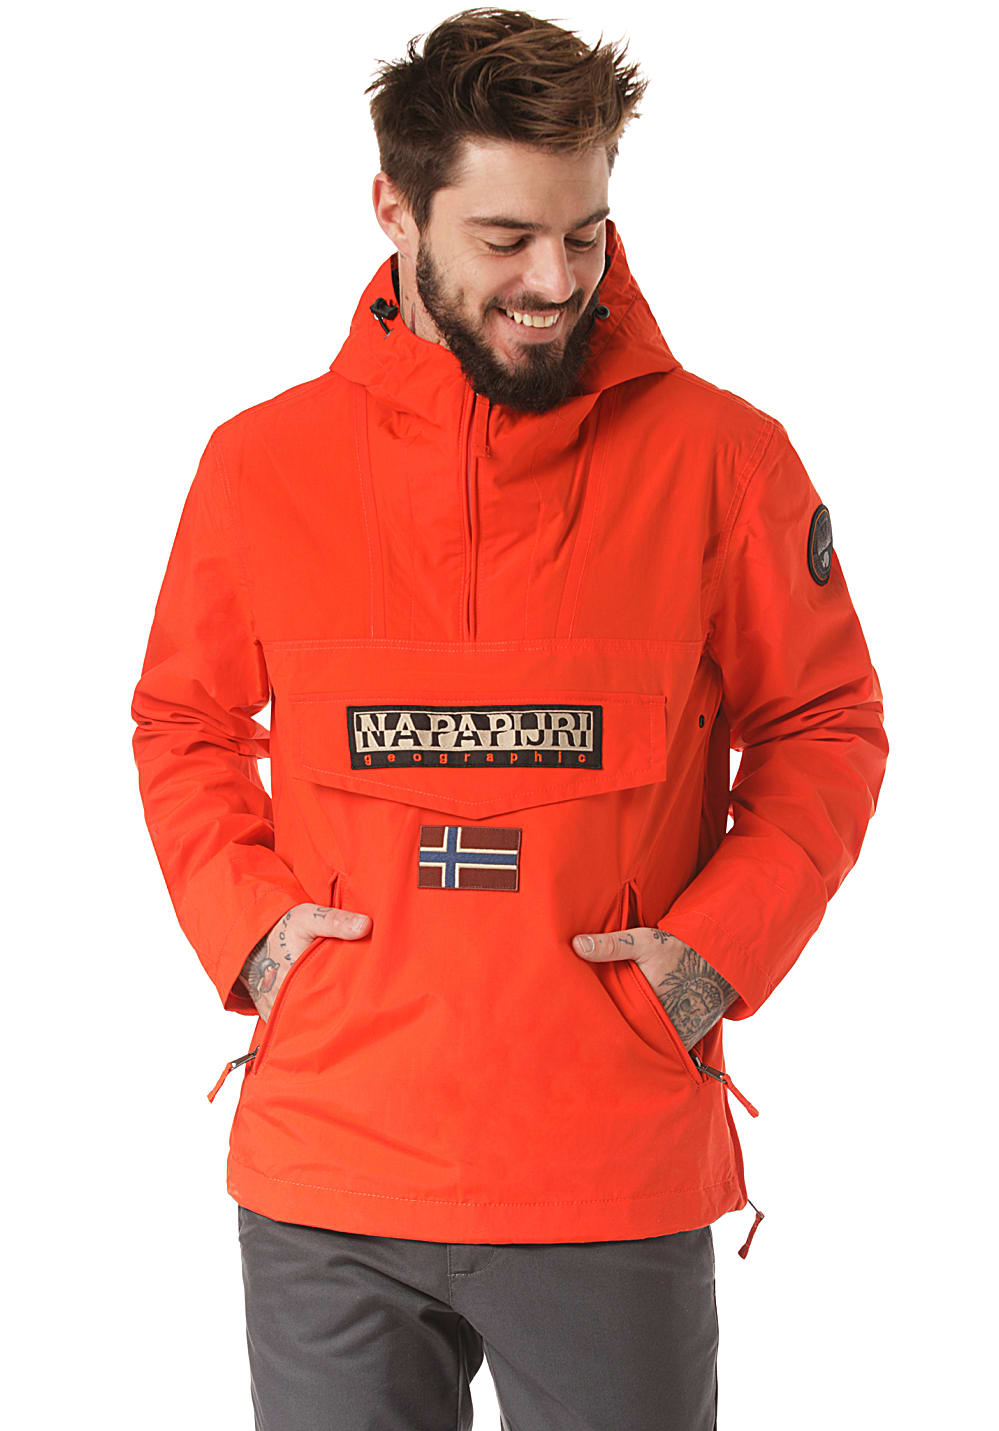 Napapijri Winterjacke Rainforest Winterjacken orange Herren